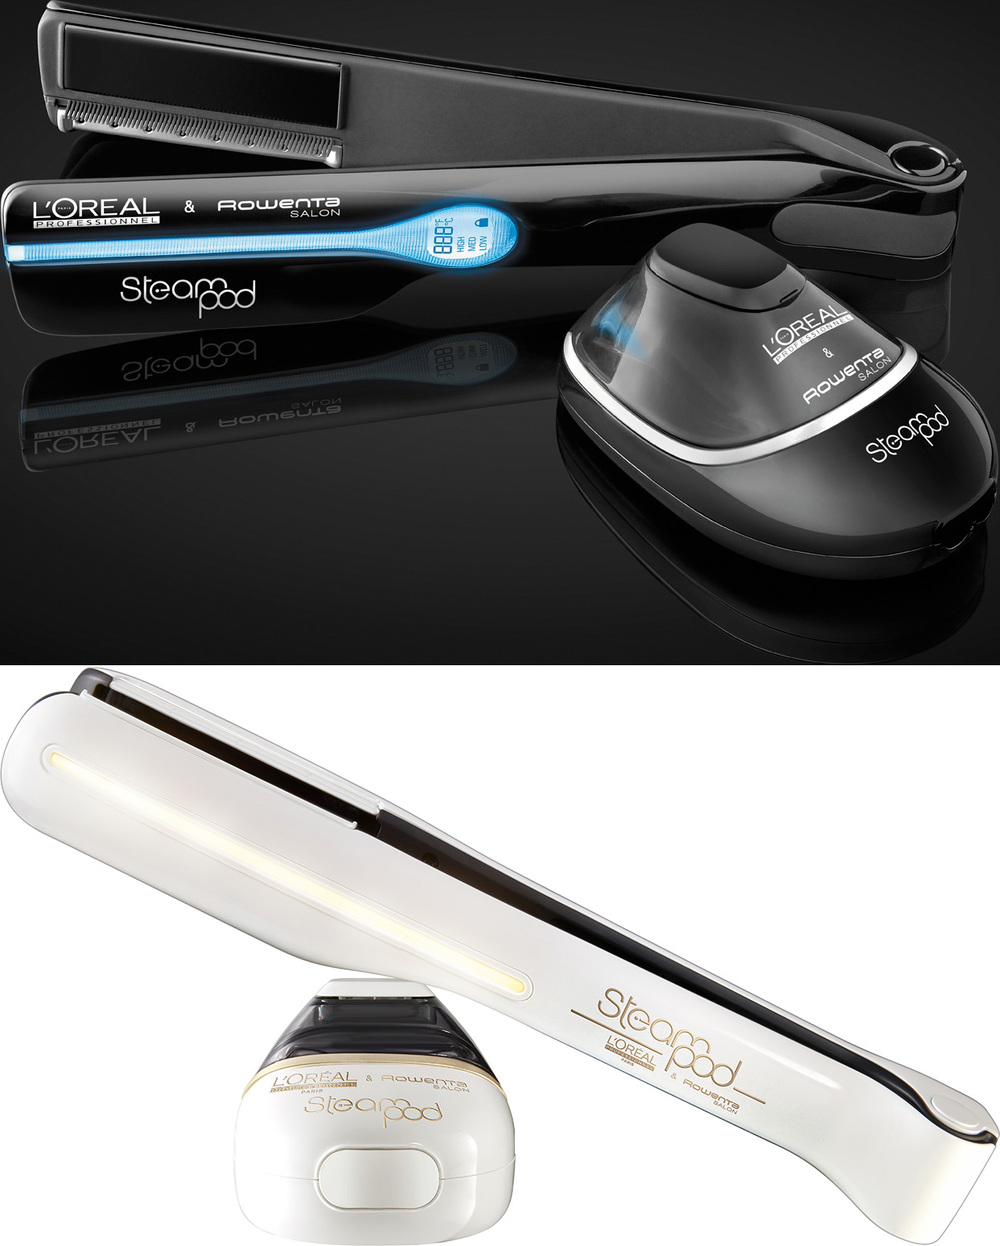 L'Oreal Professional Steampod Hair Straightener 2.0